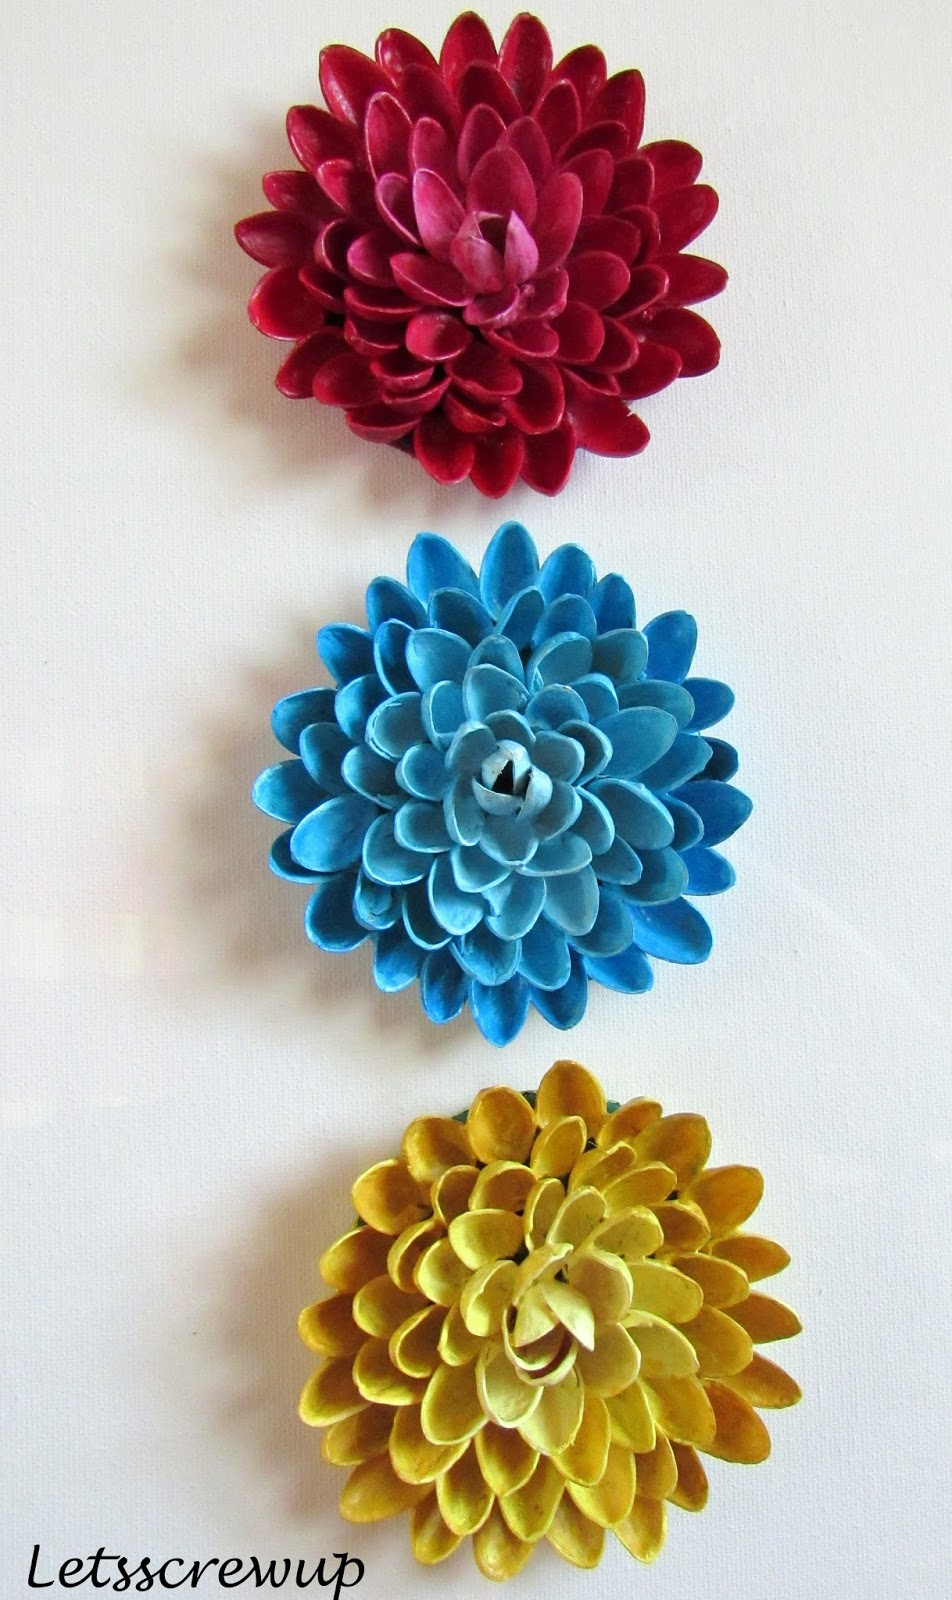 Diy Pista Shell Flower Wall Hanging Lets Screwup